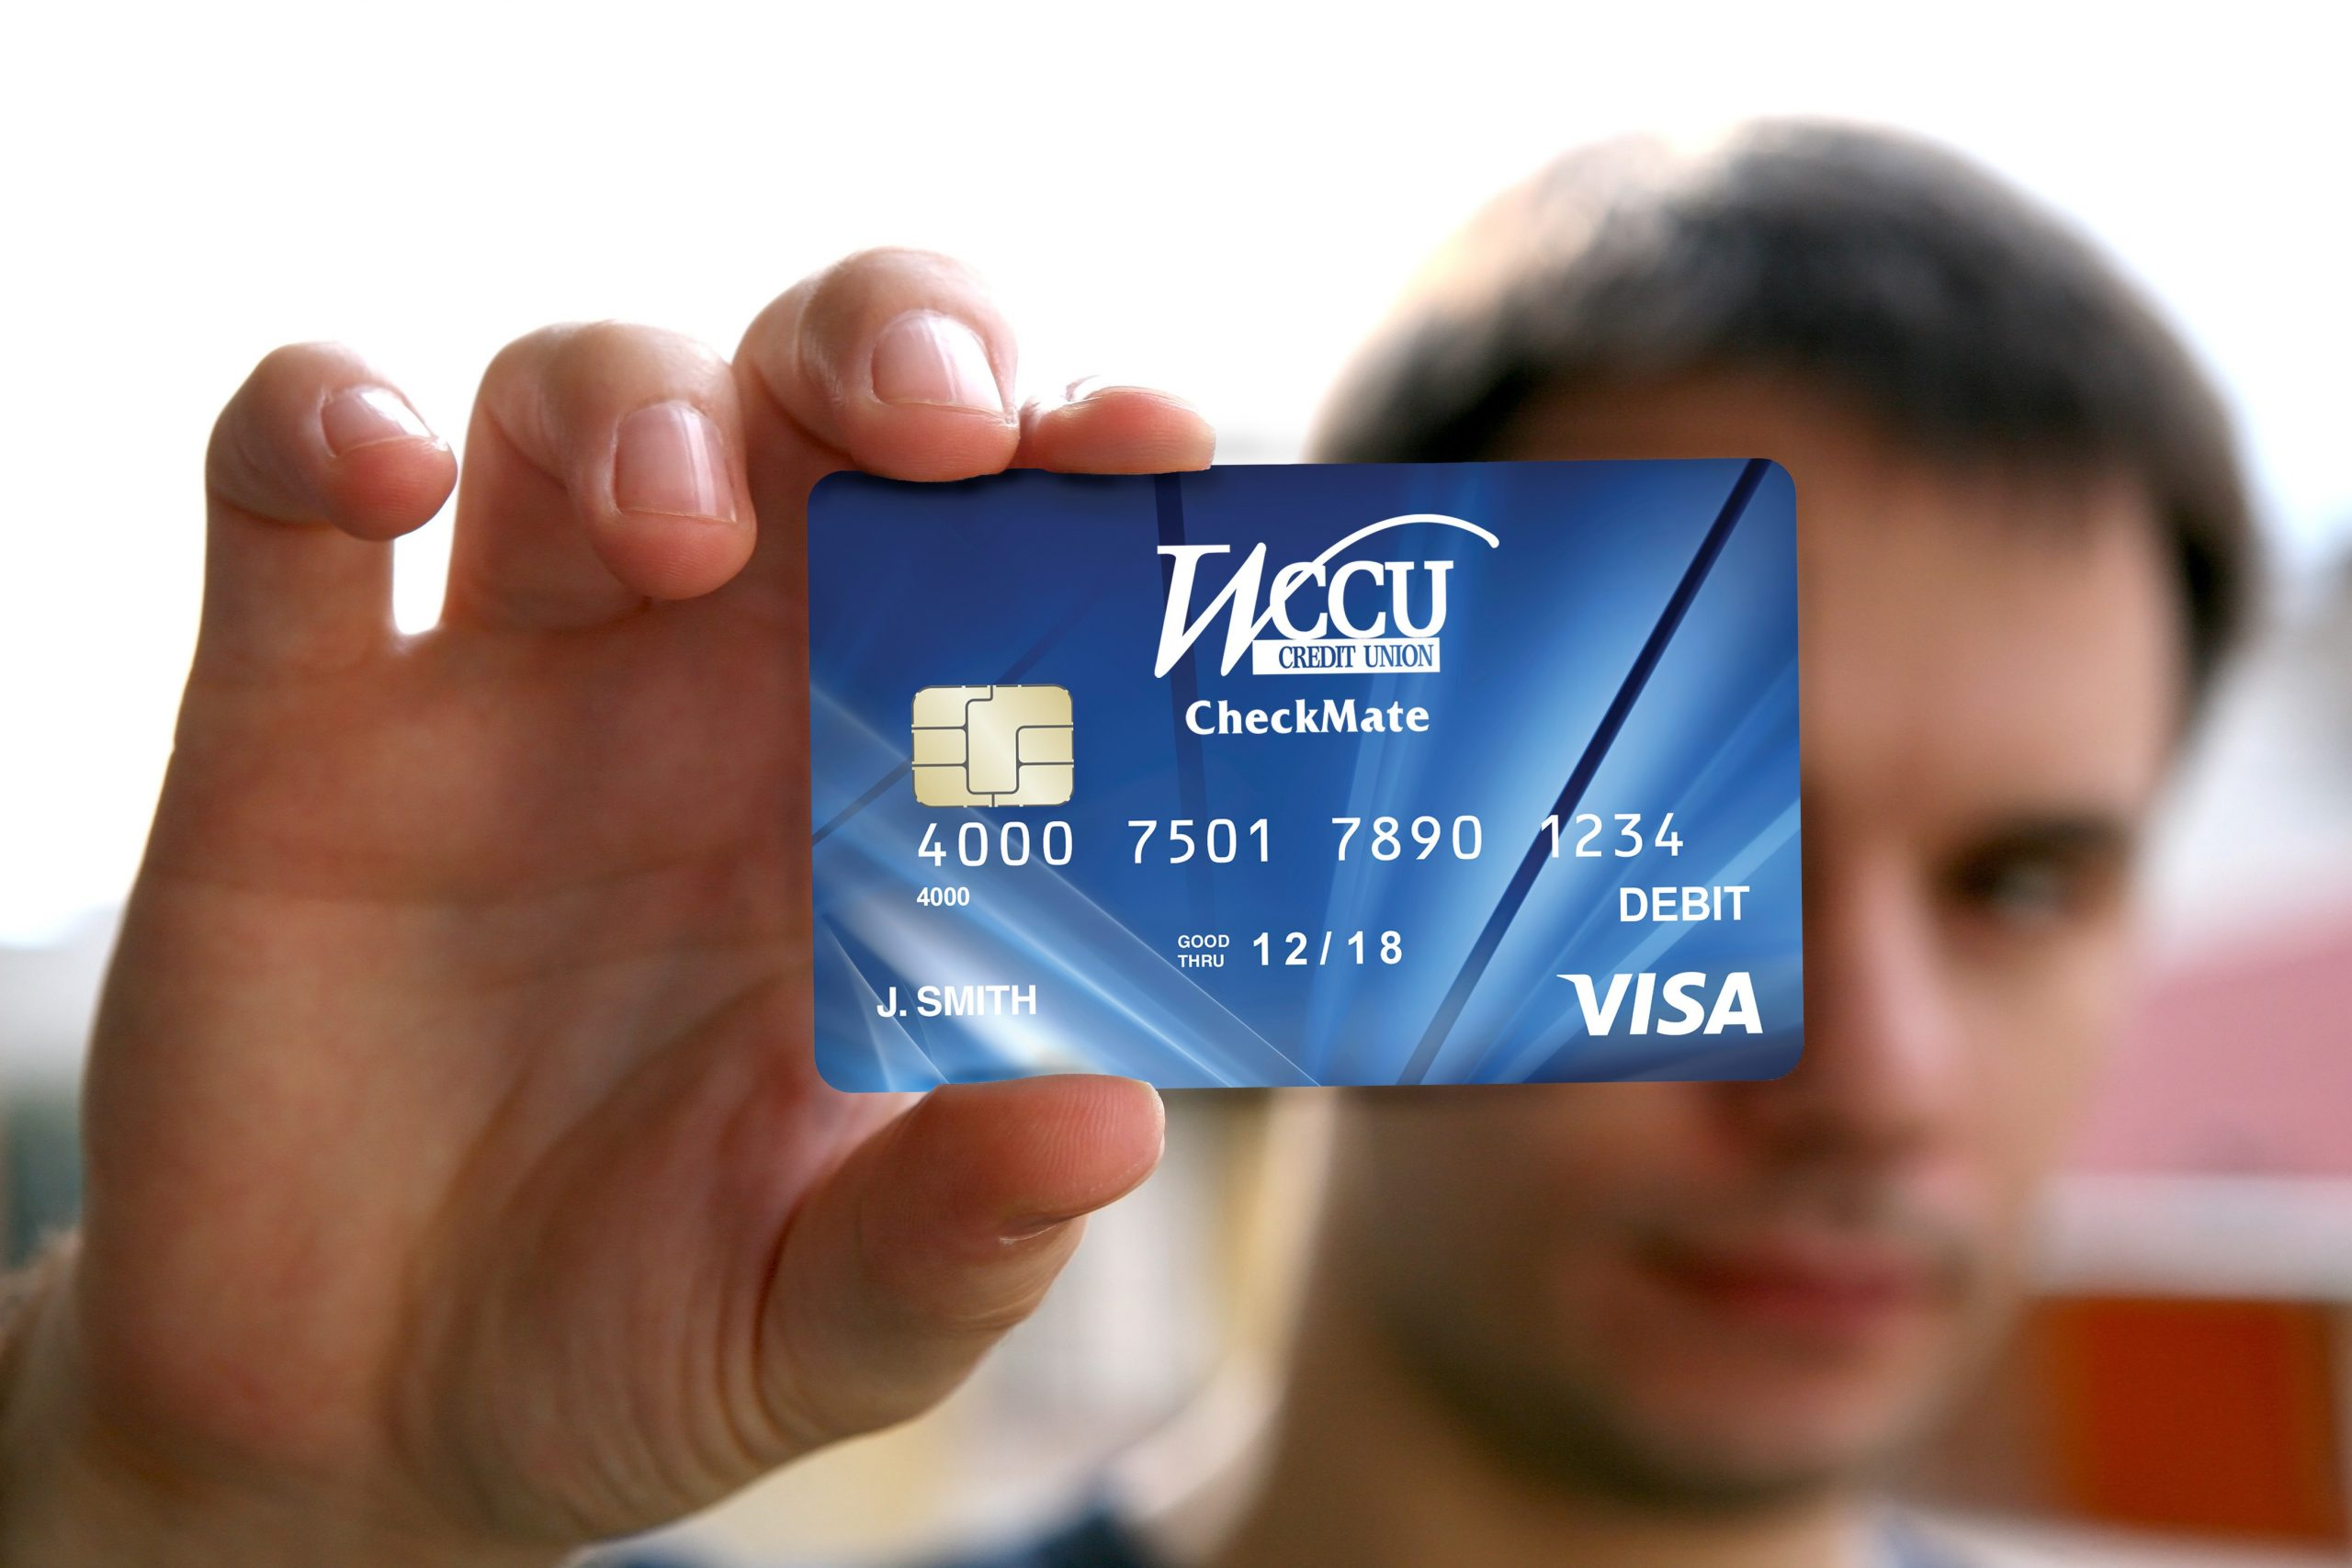 holding deposit form  man holding a blank id card with chip – WCCU Credit Union - holding deposit form